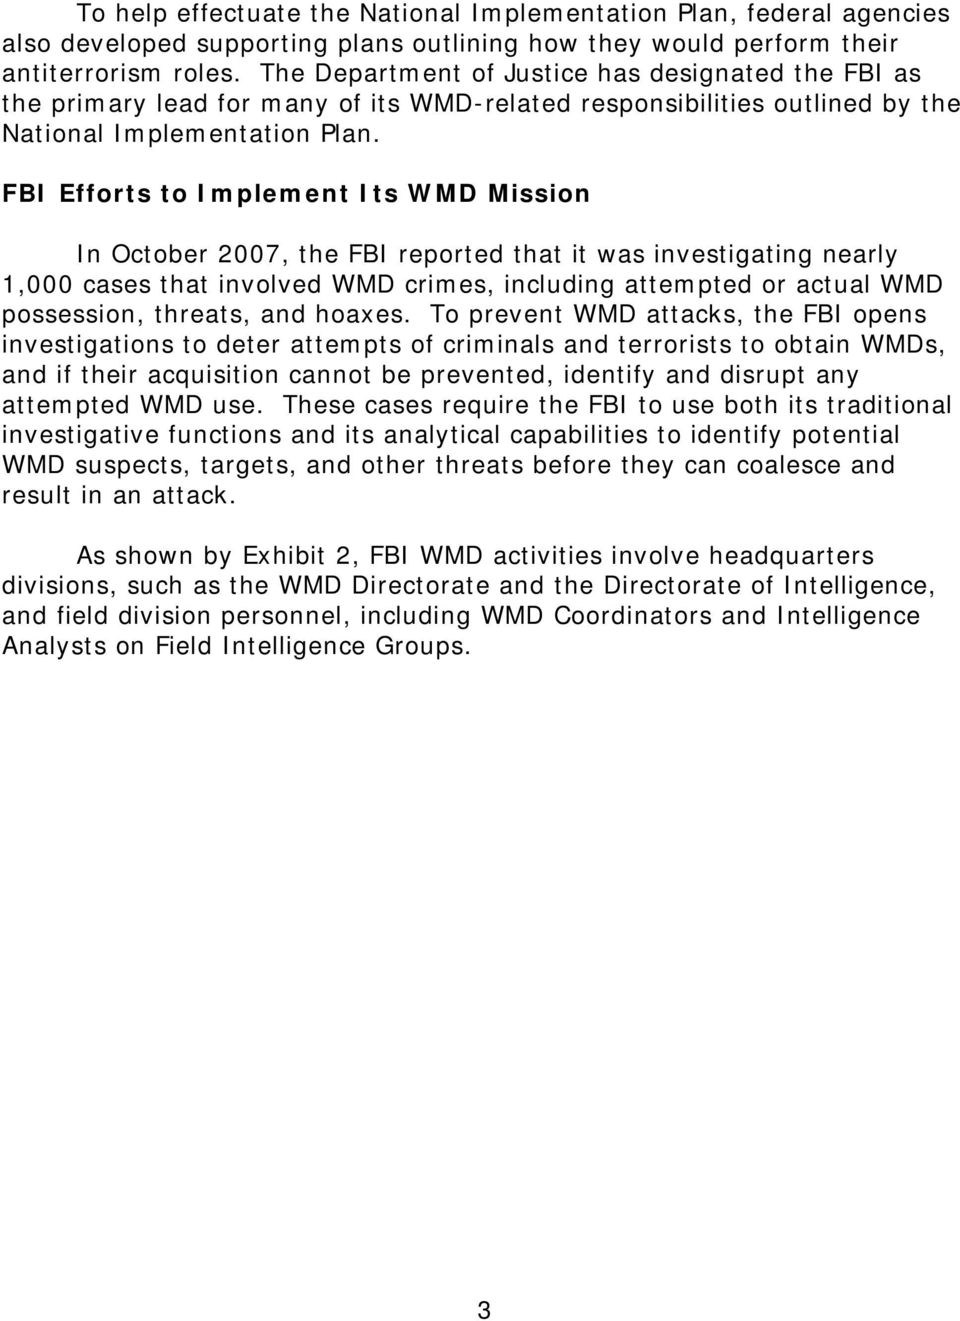 FBI Efforts to Implement Its WMD Mission In October 2007, the FBI reported that it was investigating nearly 1,000 cases that involved WMD crimes, including attempted or actual WMD possession,